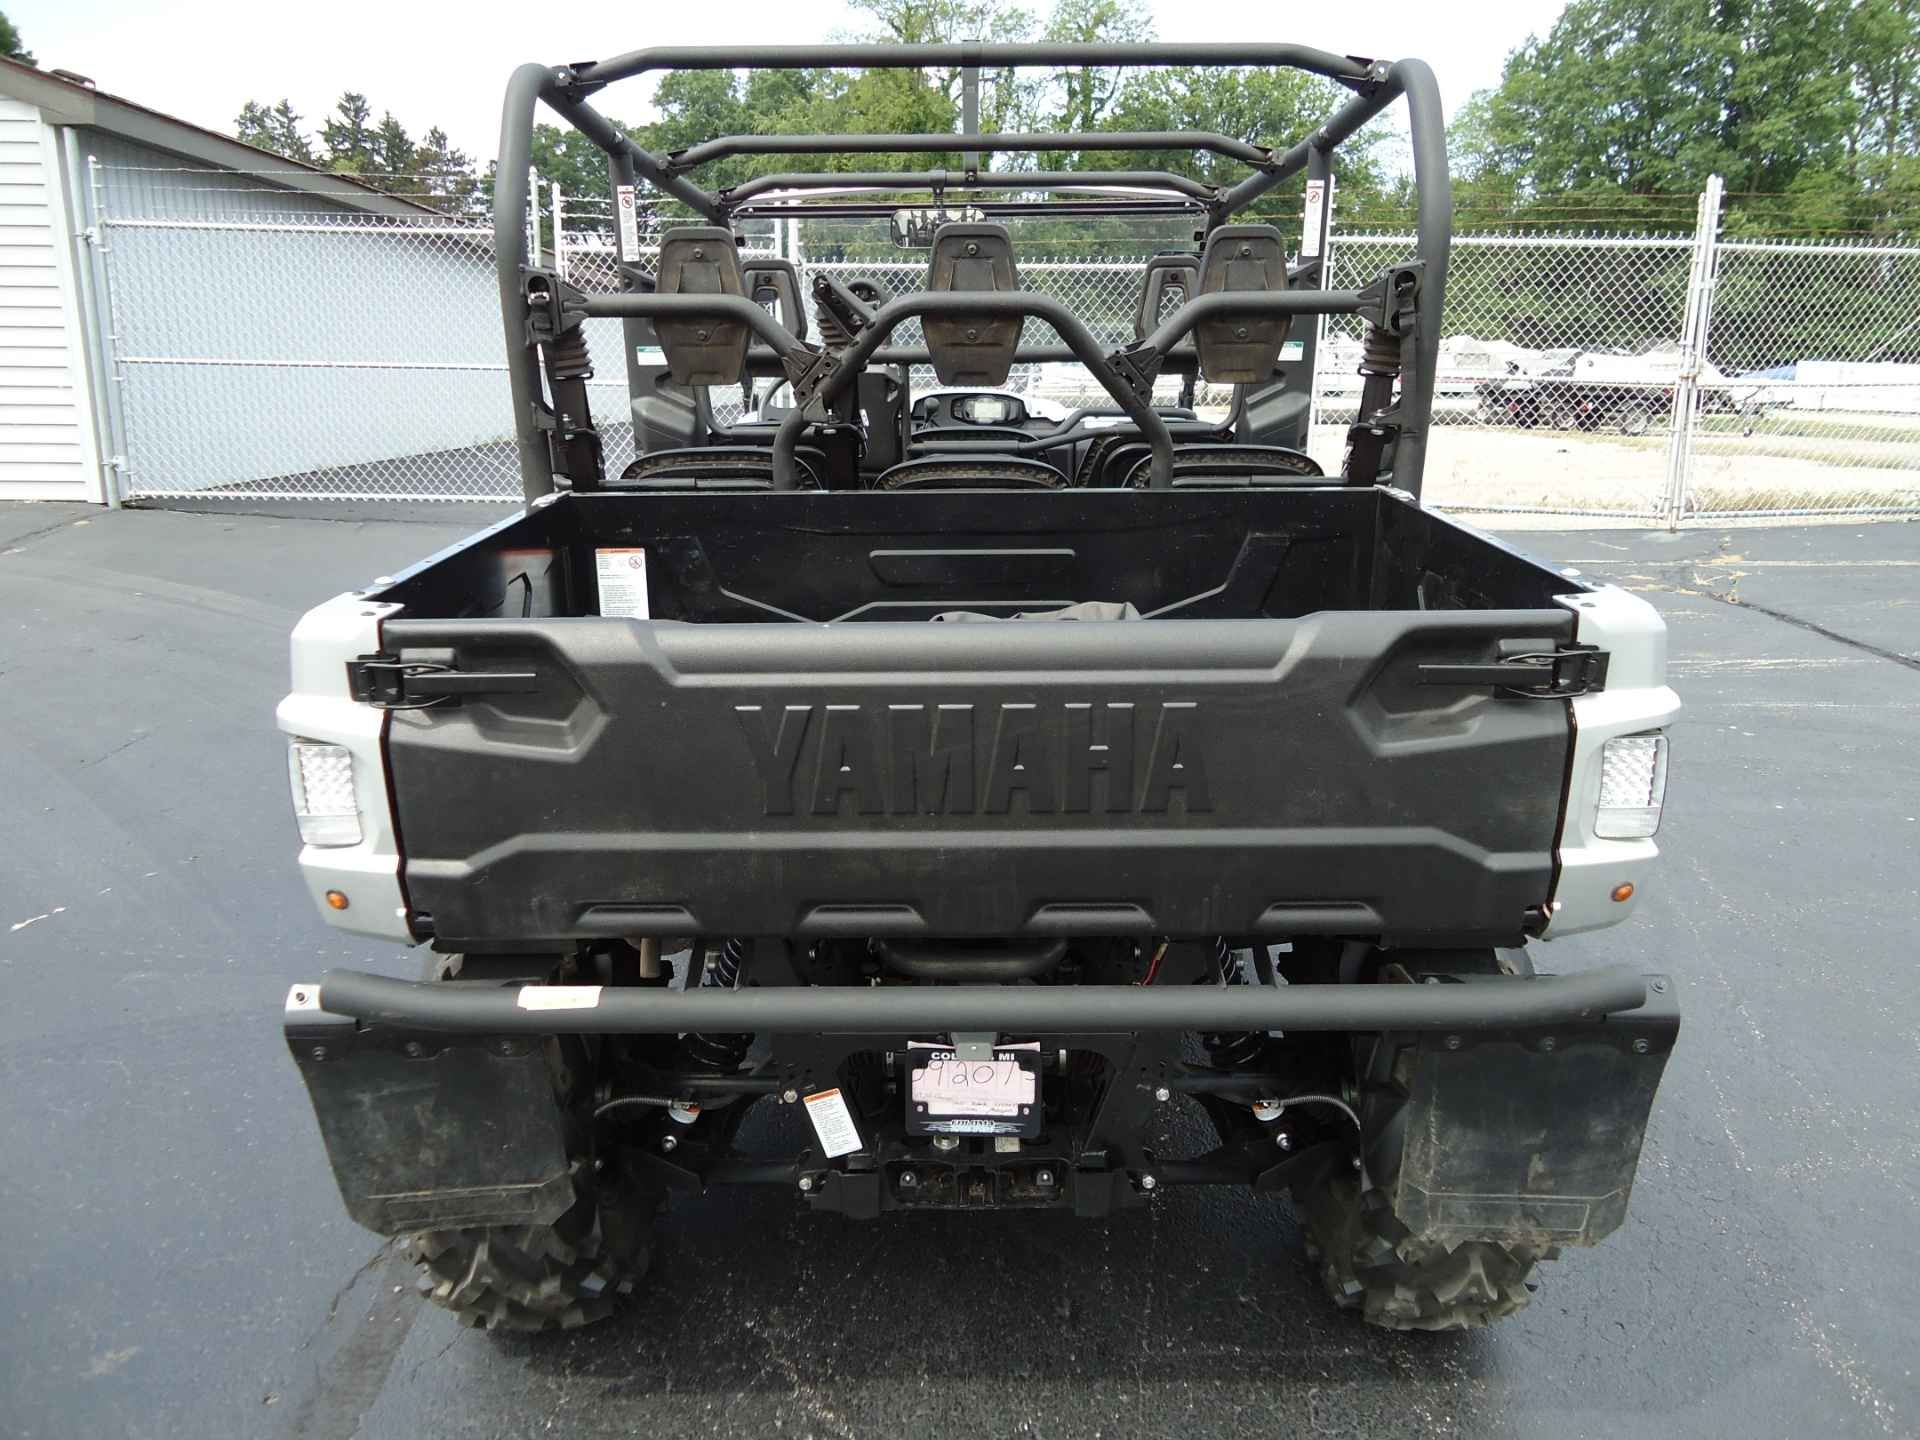 Used 2015 Yamaha Viking VI EPS SE ATVs For Sale in Michigan This is